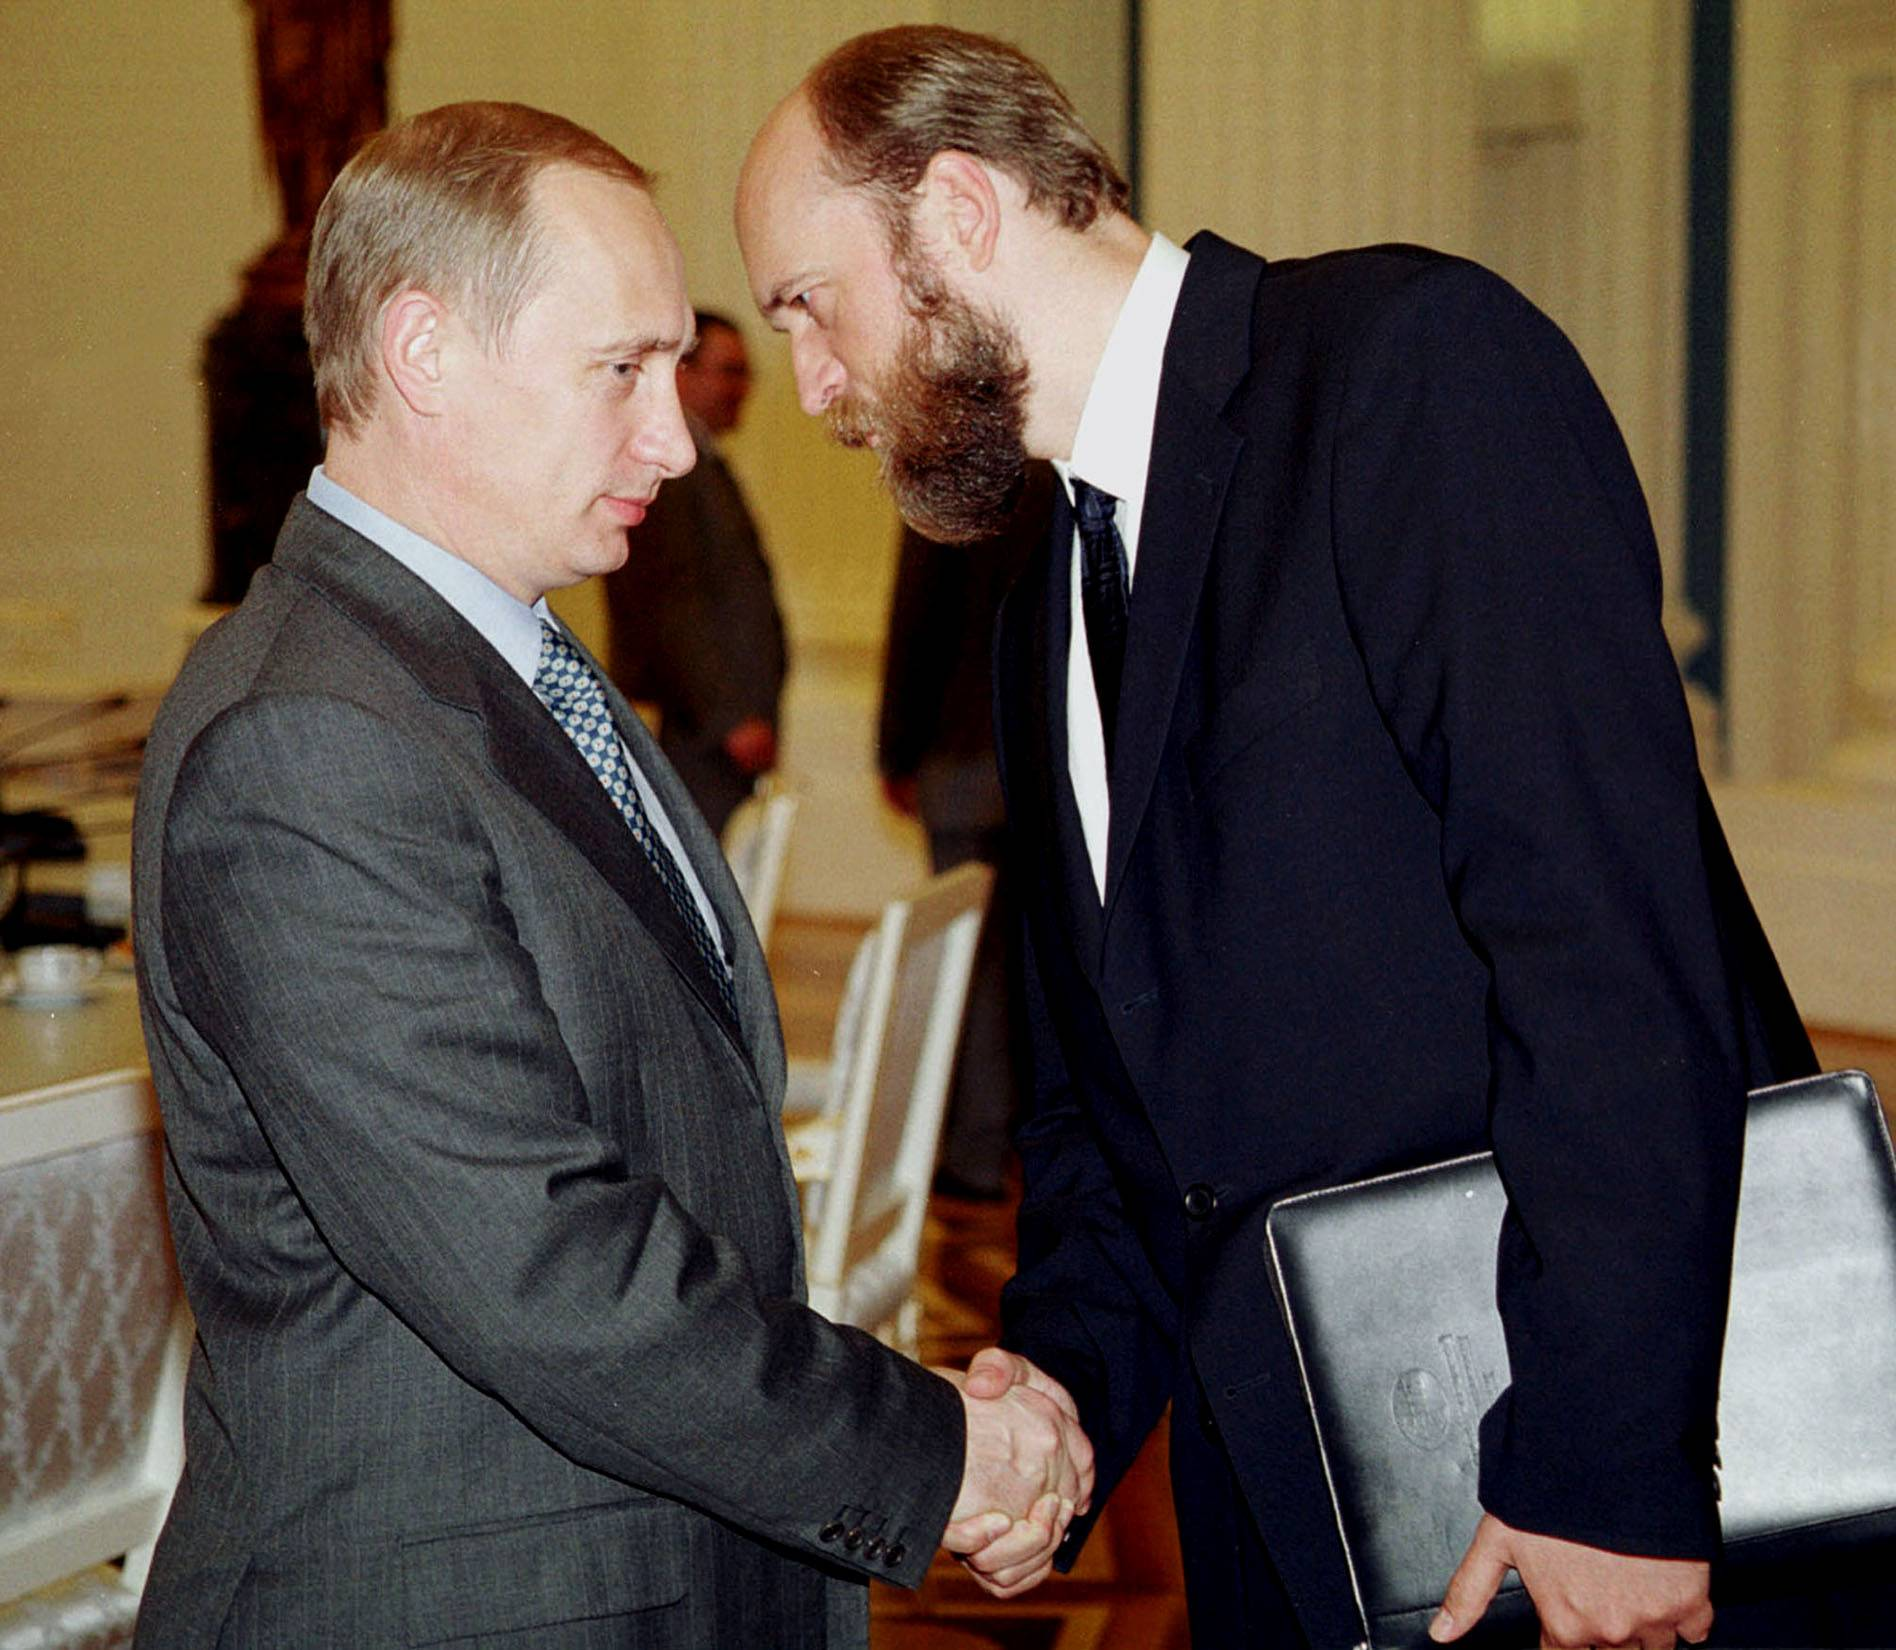 Russian President Vladimir Putin and Sergei Pugachev in July 2000. | TASS NEWS AGENCY / VIA REUTERS